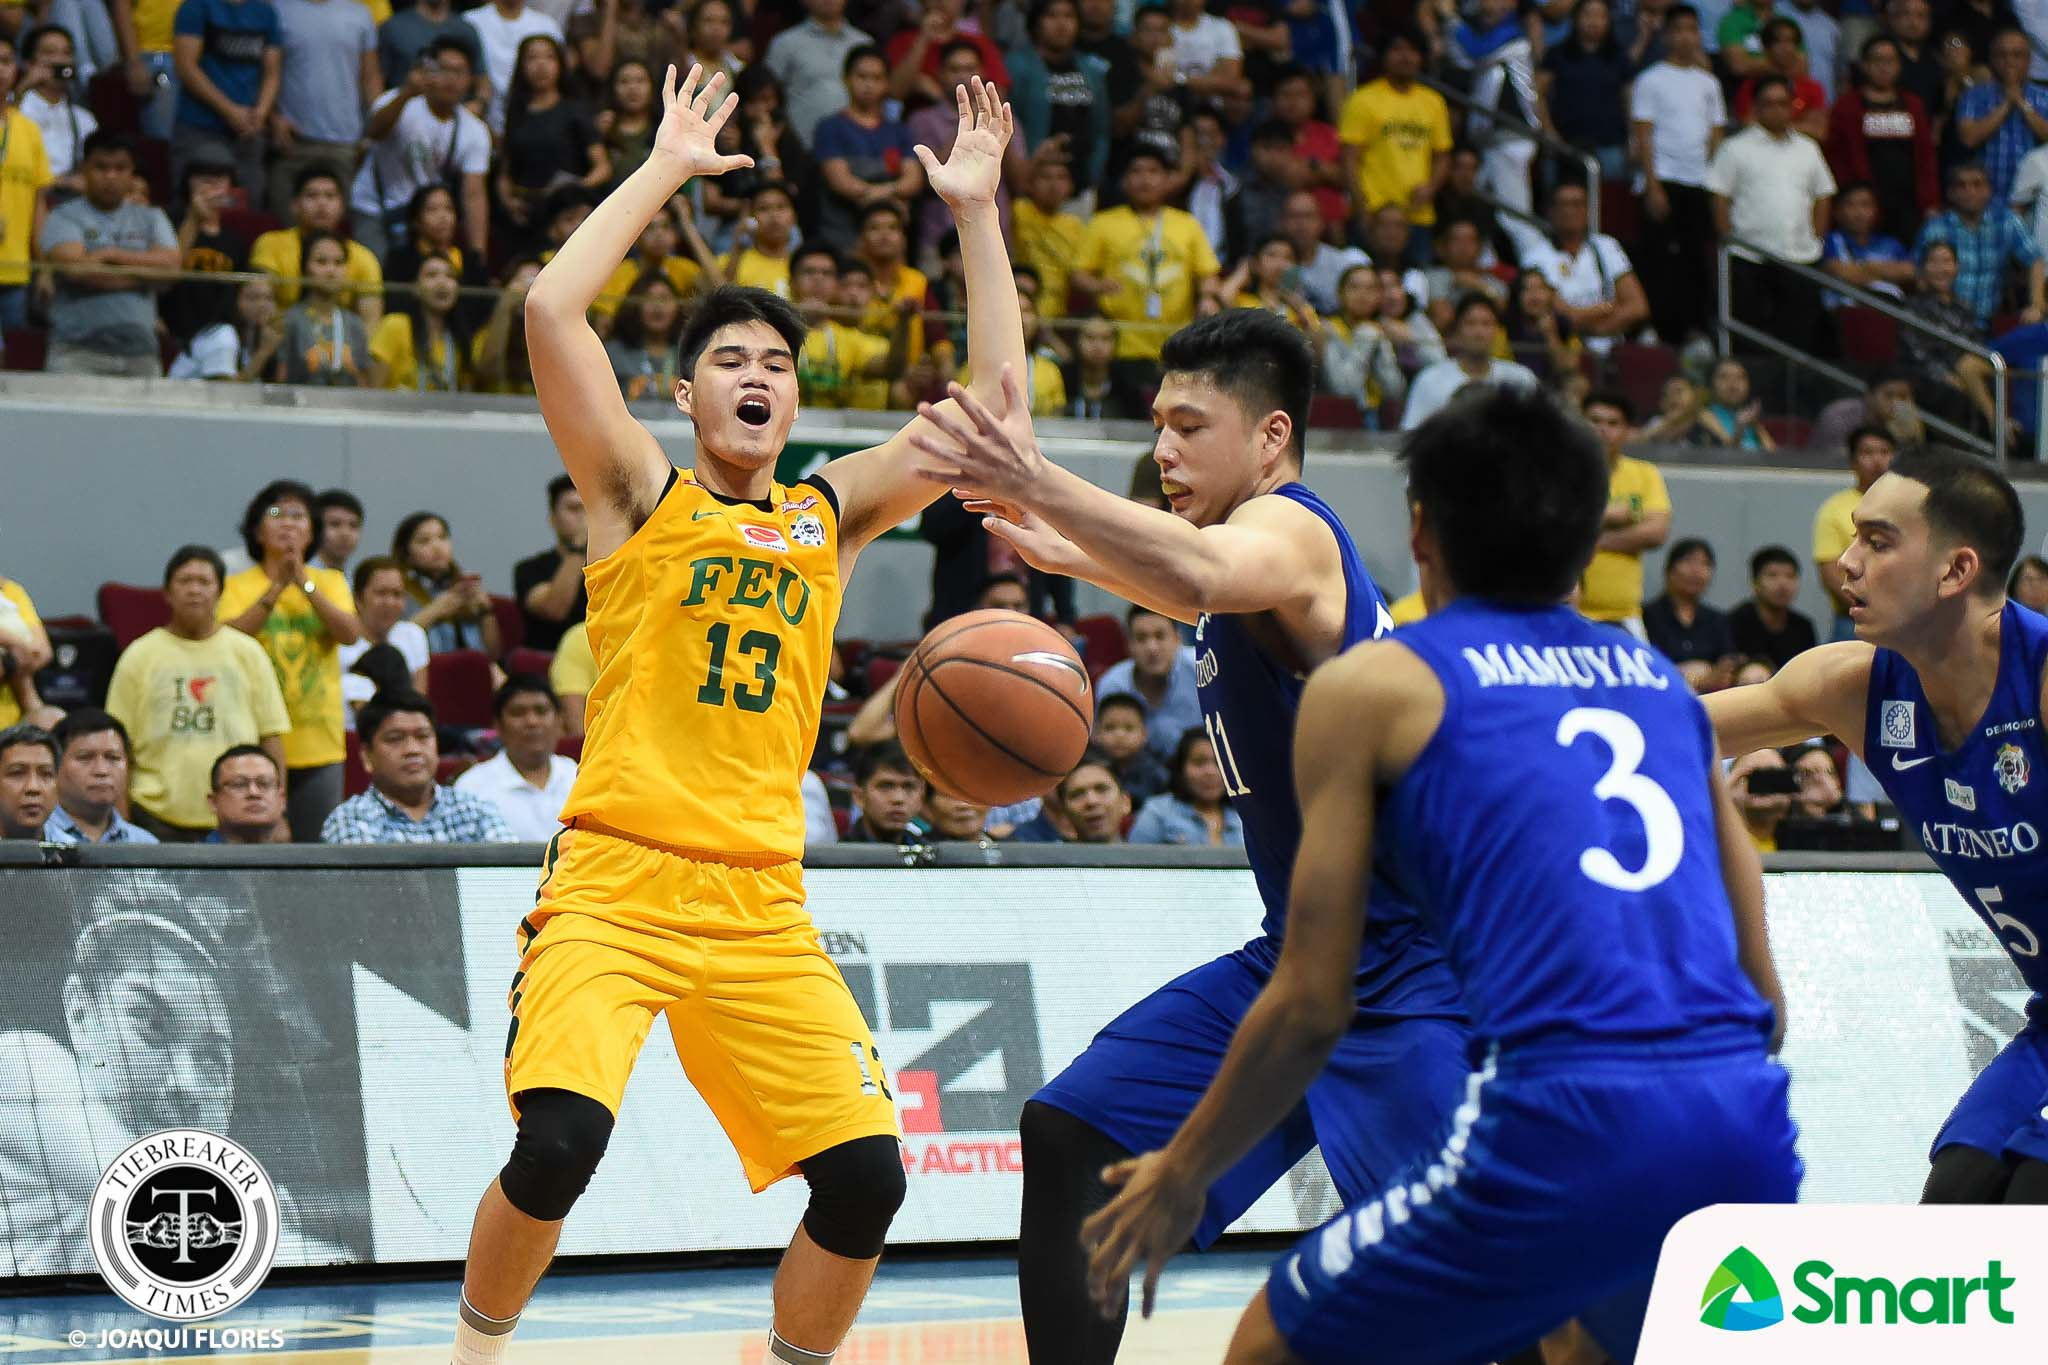 Tiebreaker Times Arvin Tolentino exorcises ghost of Season 80: 'Never again, never again' Basketball FEU News UAAP  UAAP Season 81 Men's Basketball UAAP Season 81 FEU Men's Basketball Arvin Tolentino